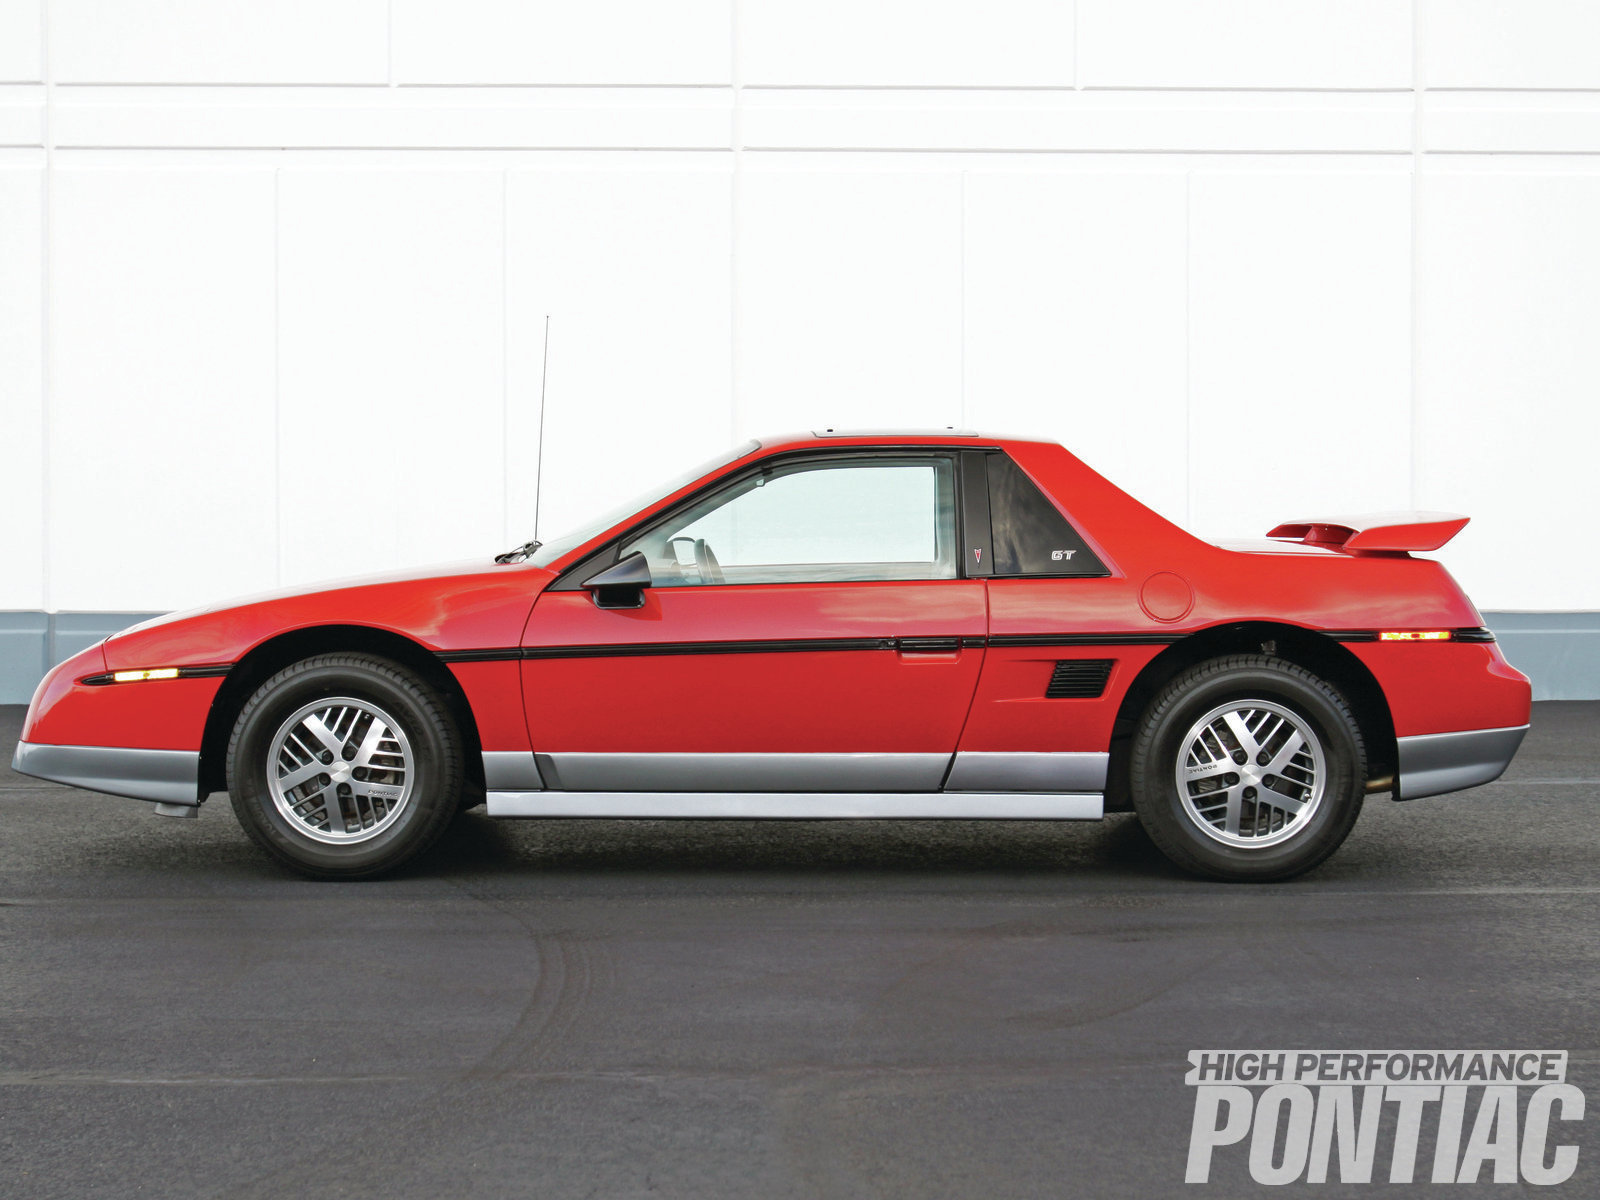 1985 Pontiac Fiero Gt Back From Obscurity High Performance 84 Fuse Box The 85 Borrowed Its Exterior Package Limited Edition Indy Pace